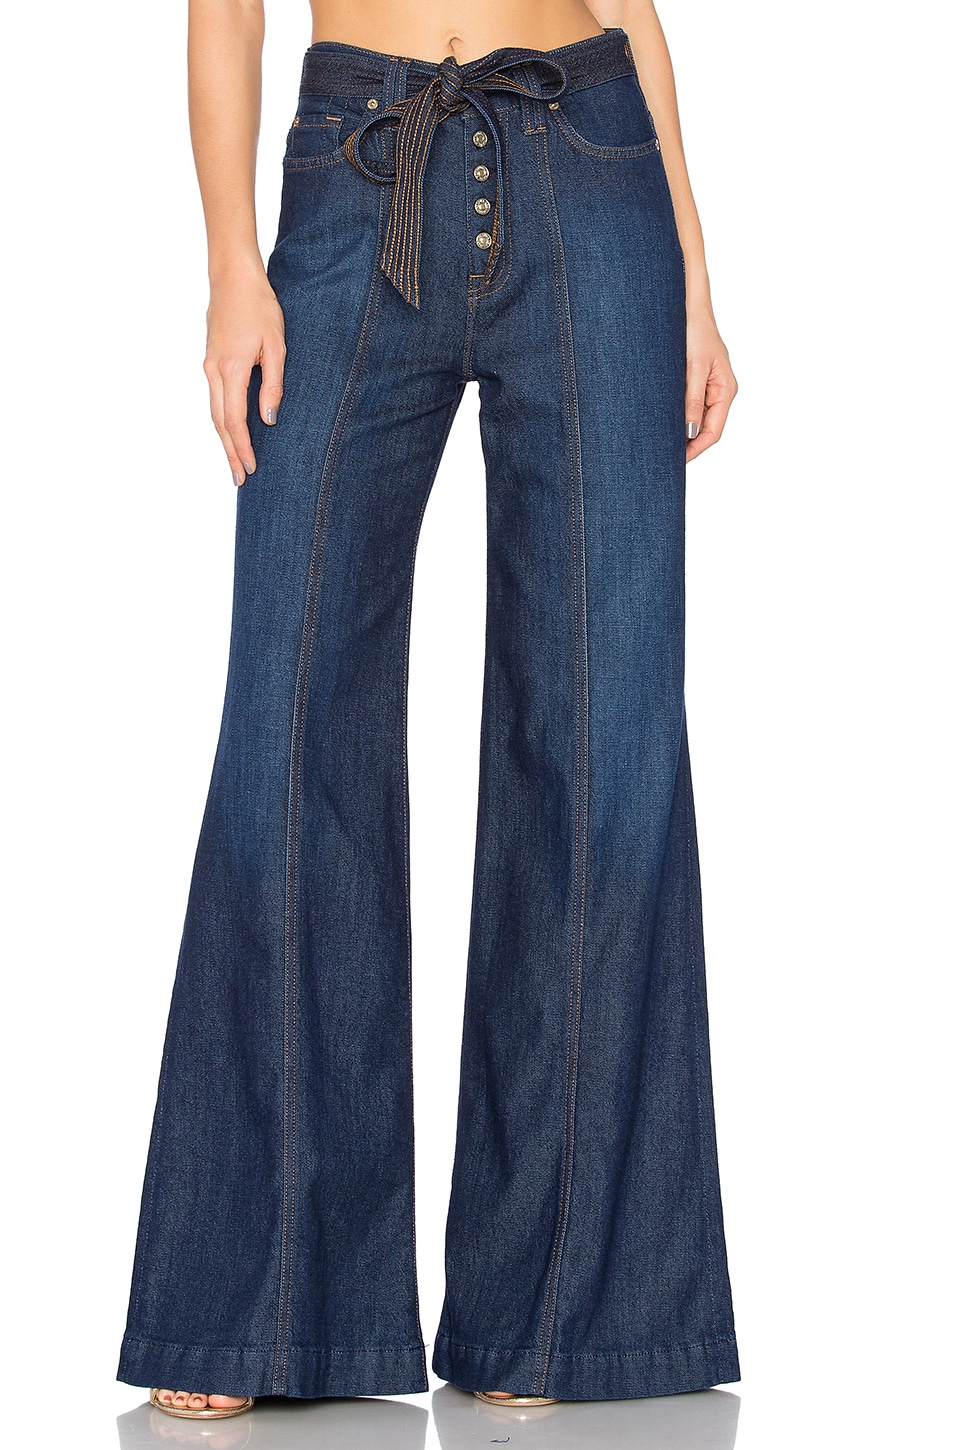 Wide Leg Lounge Pant by 7 For All Mankind